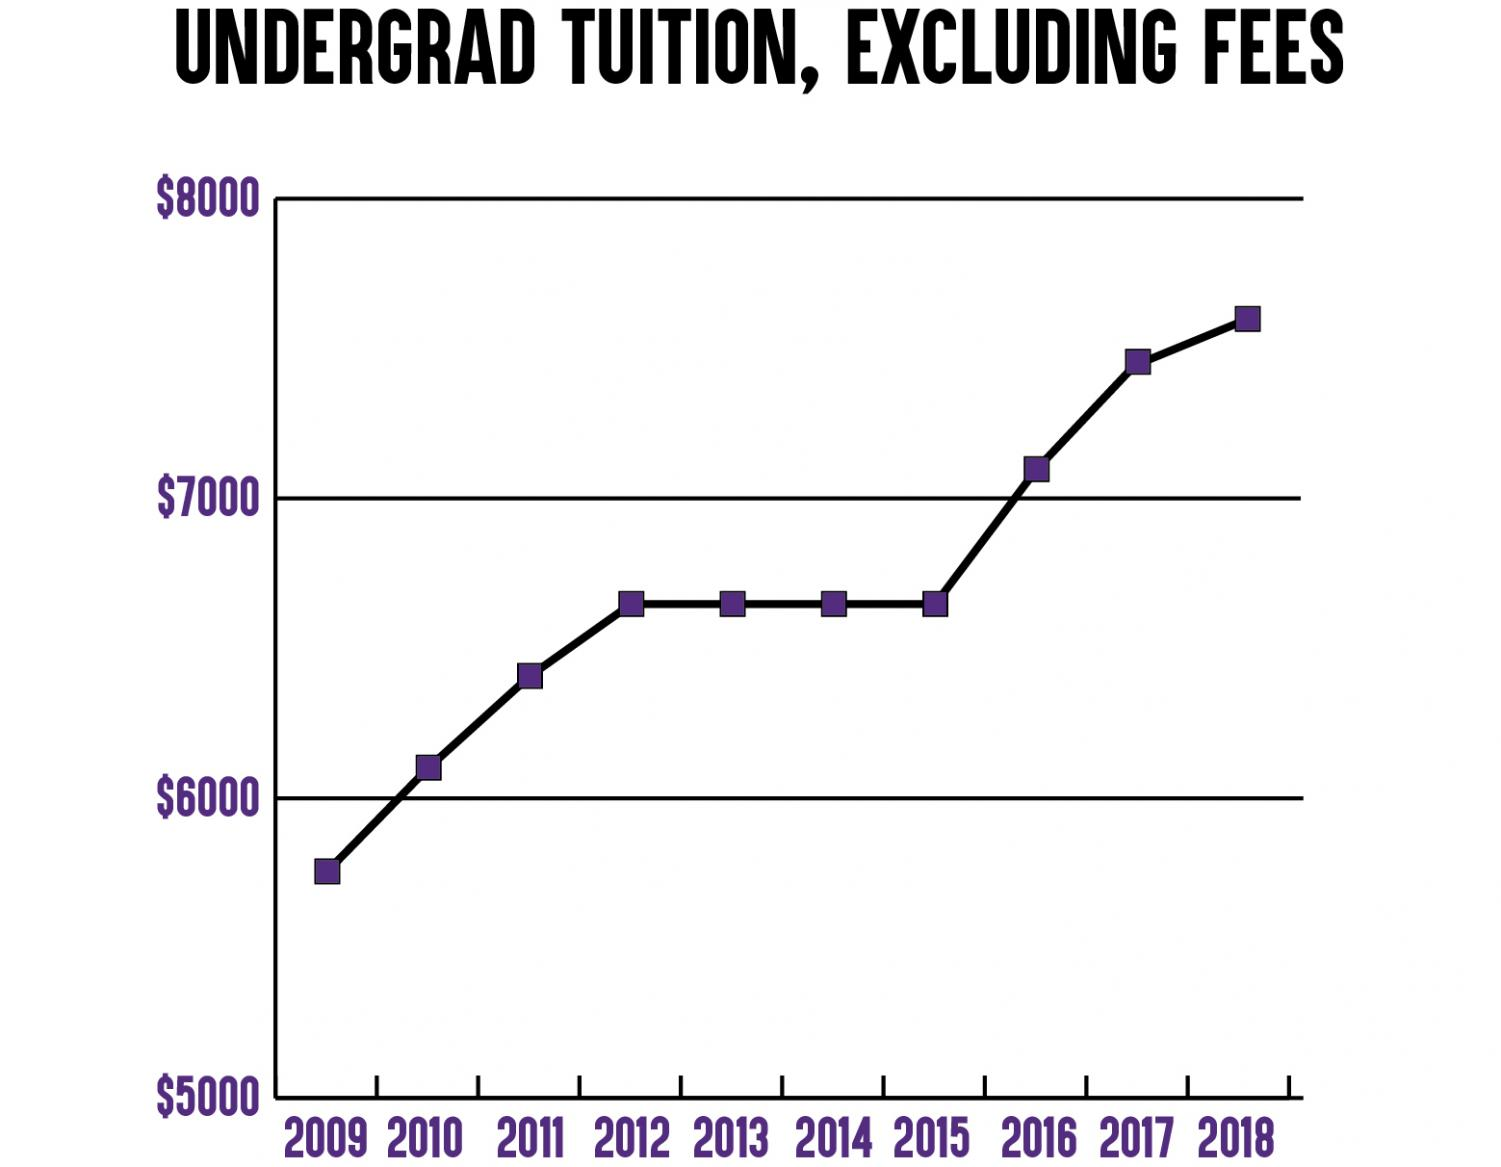 The Iowa Board of Regents approved a 2.8% hike in tuition, increasing in-state tuition from $7,456 to $7,665.